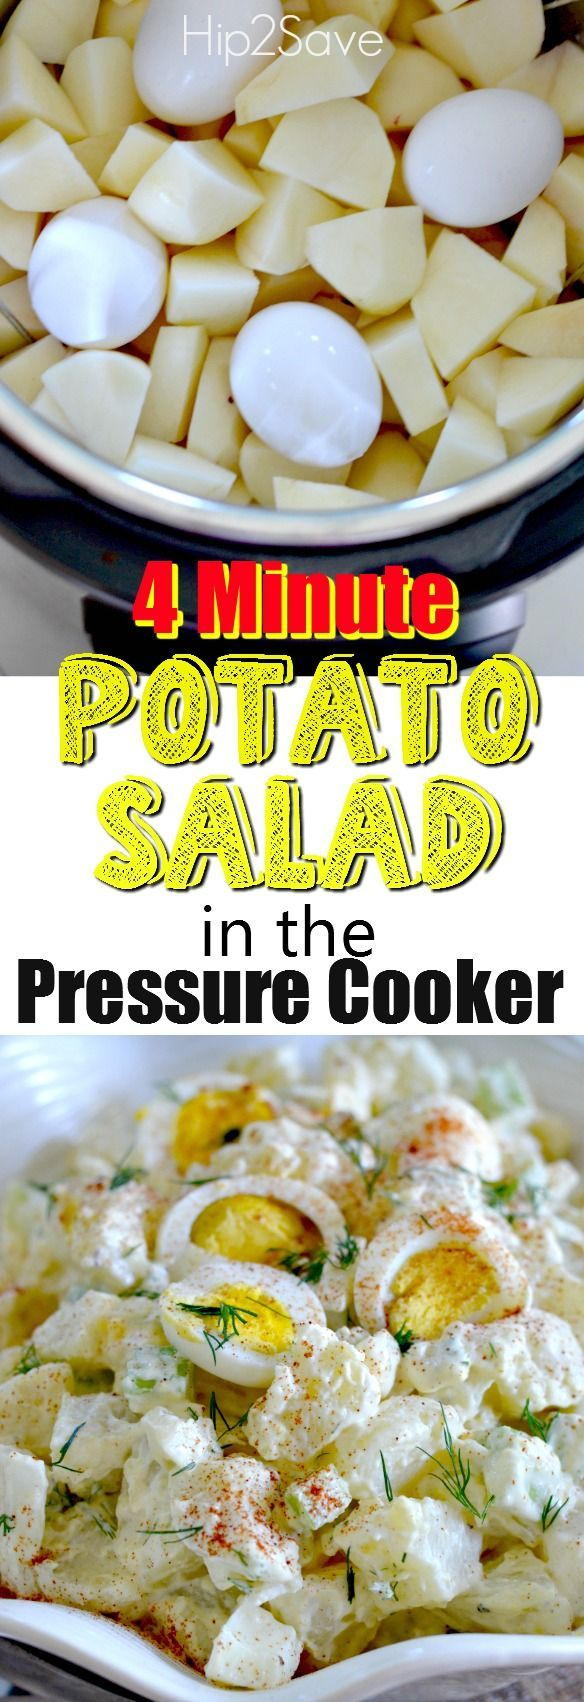 Pressure Cooker Potato Salad Recipe – Hip2Save